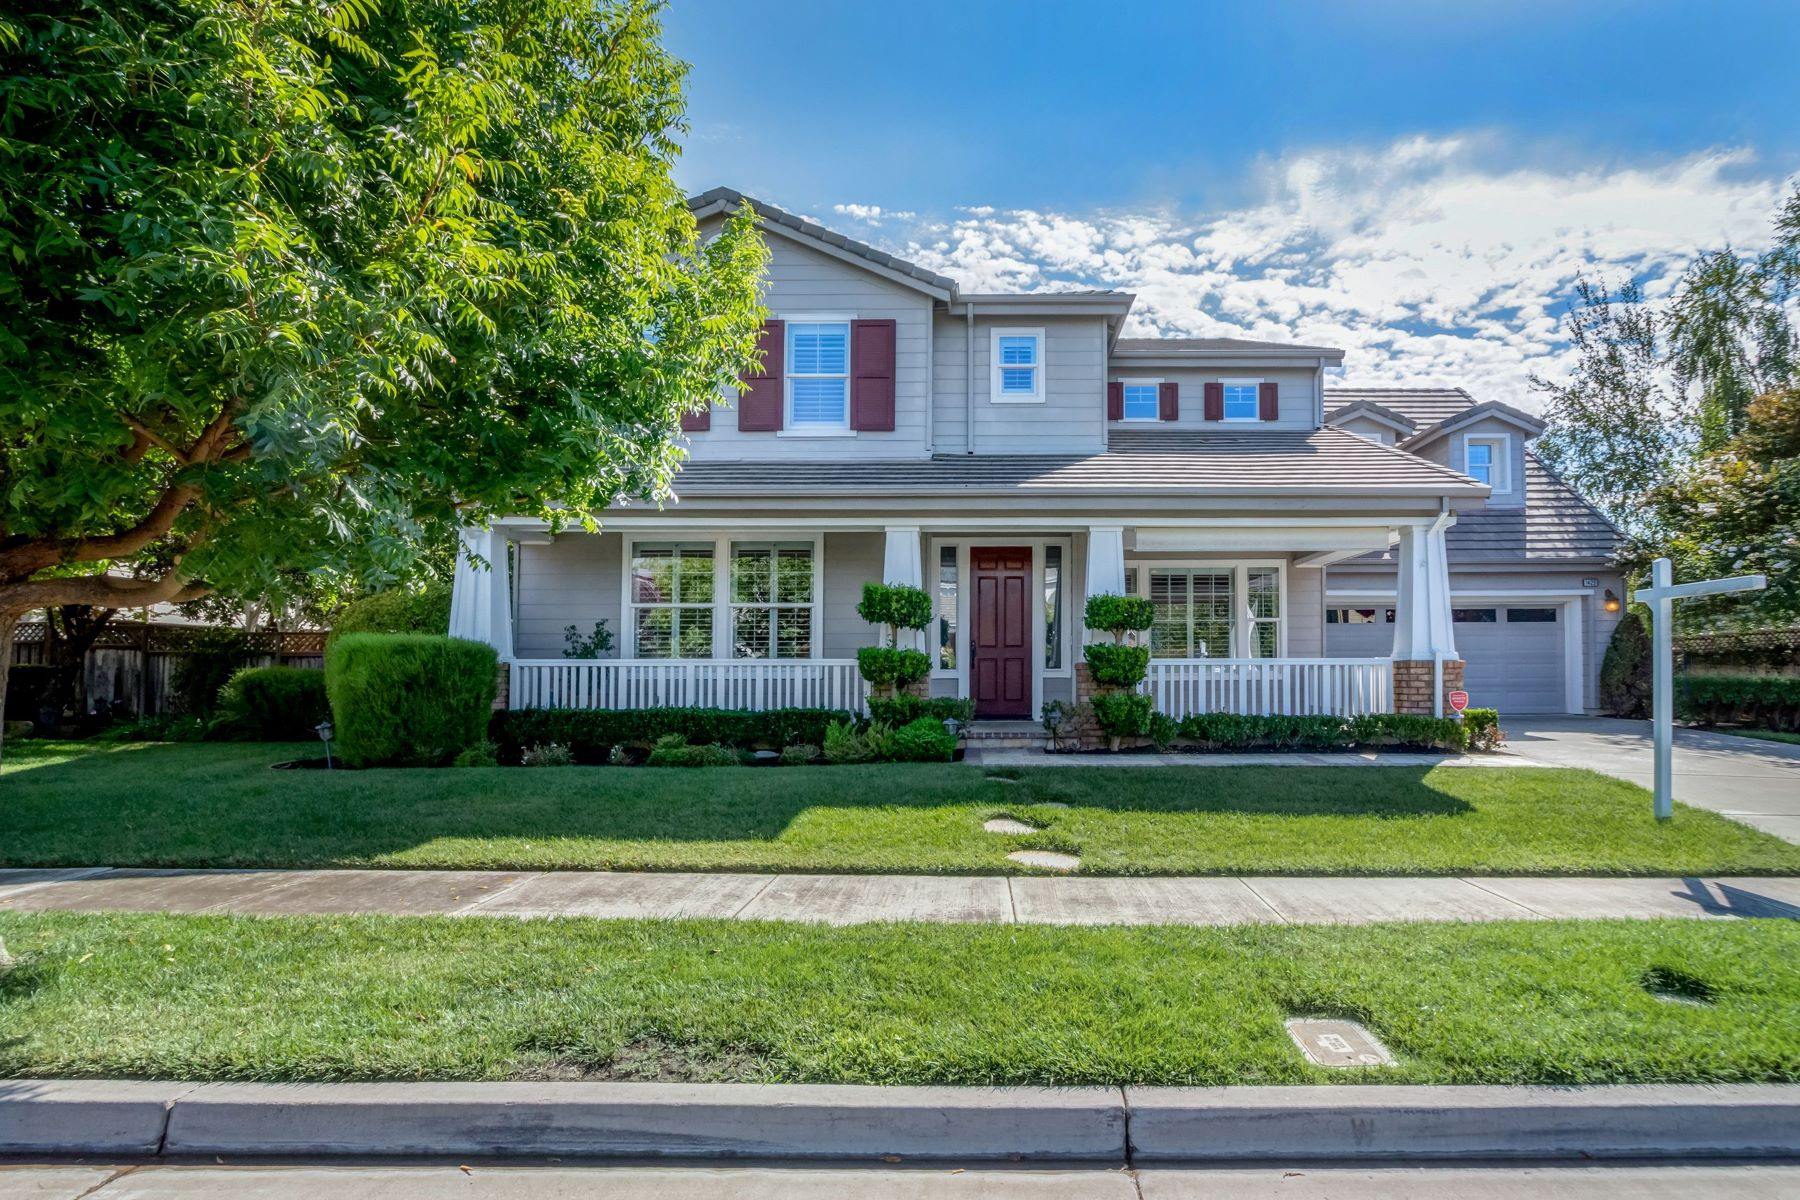 Single Family Homes for Sale at 1429 White Stable Drive, Pleasanton, CA 94566 1429 White Stable Drive Pleasanton, California 94566 United States